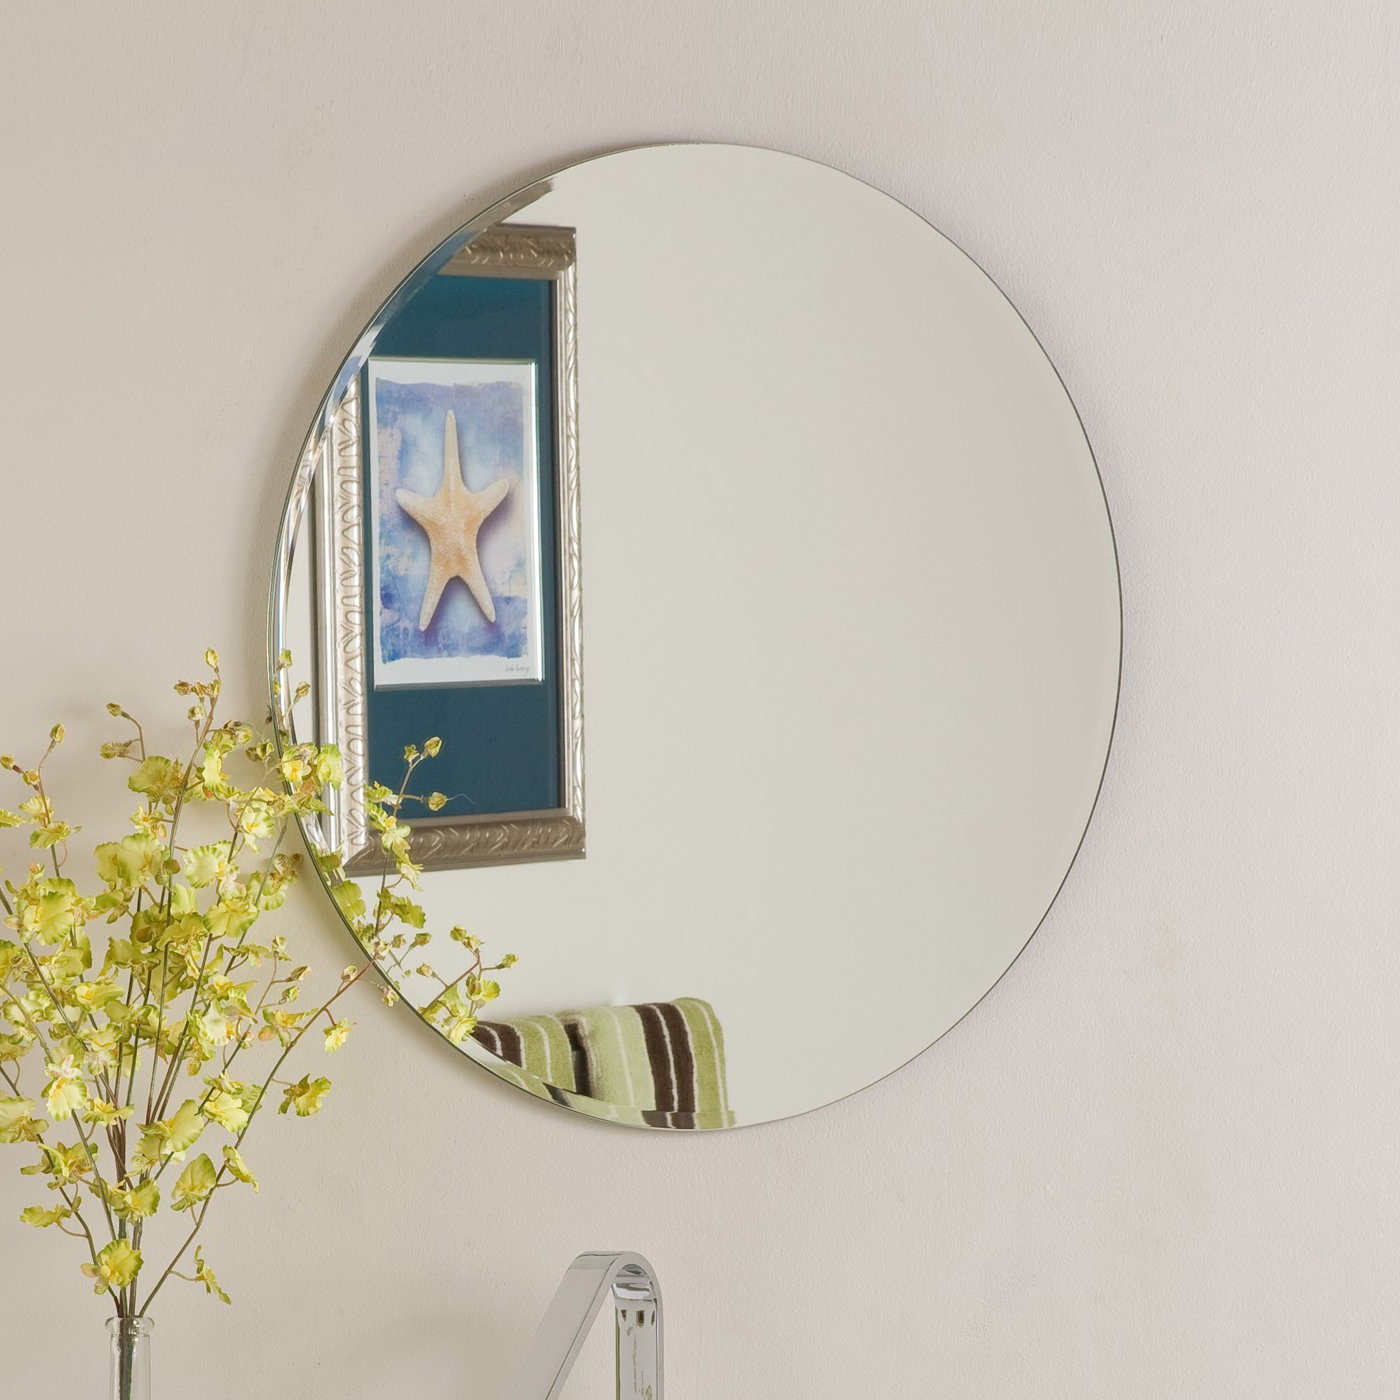 Decor Wonderland Frameless Round Beveled Mirror Within Most Current Frameless Round Wall Mirrors (View 6 of 20)